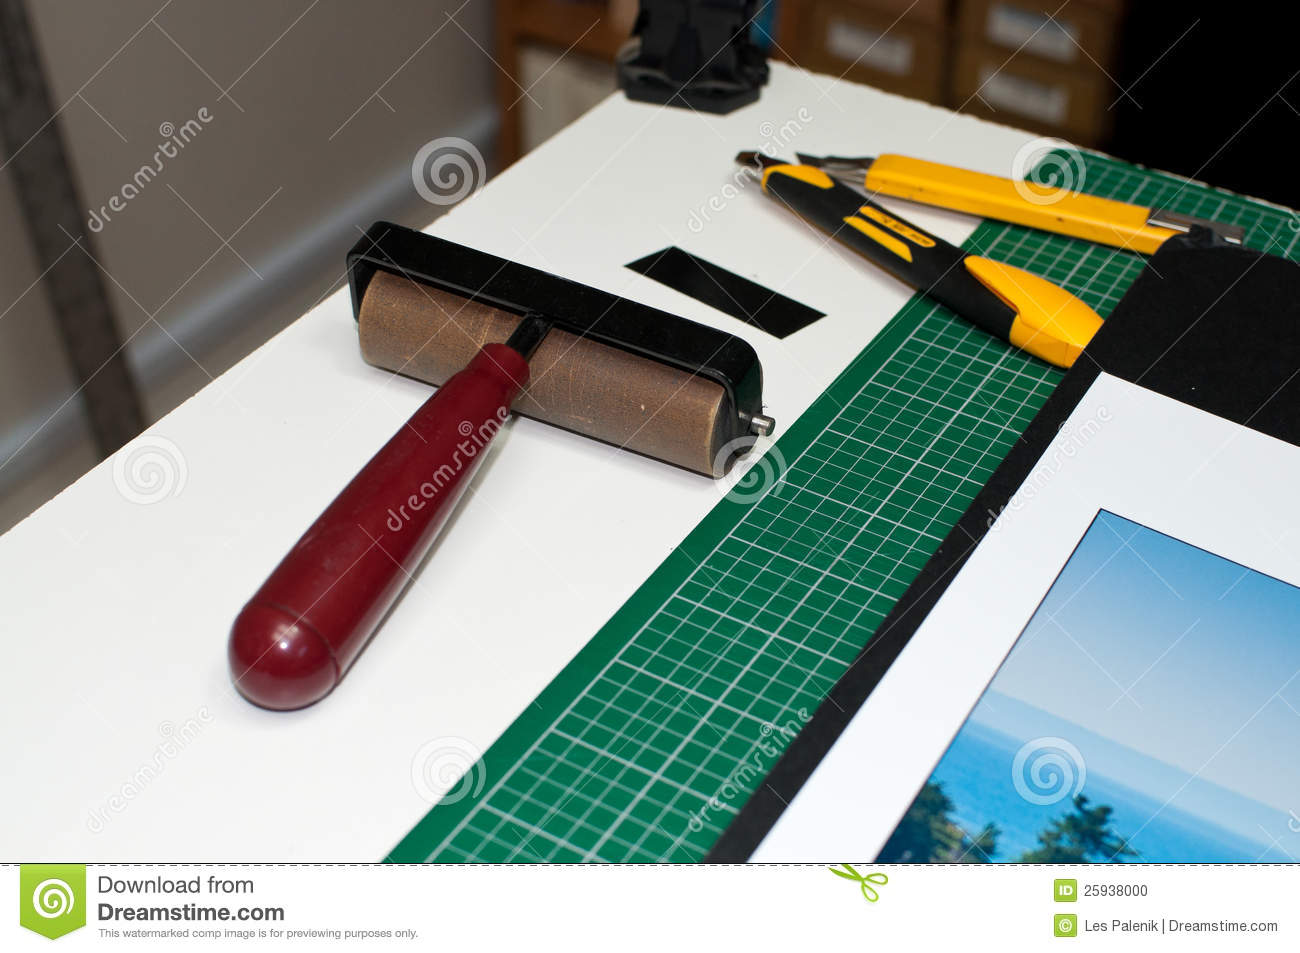 Framing And Mounting Tools Stock Photo Image Of Knife 25938000